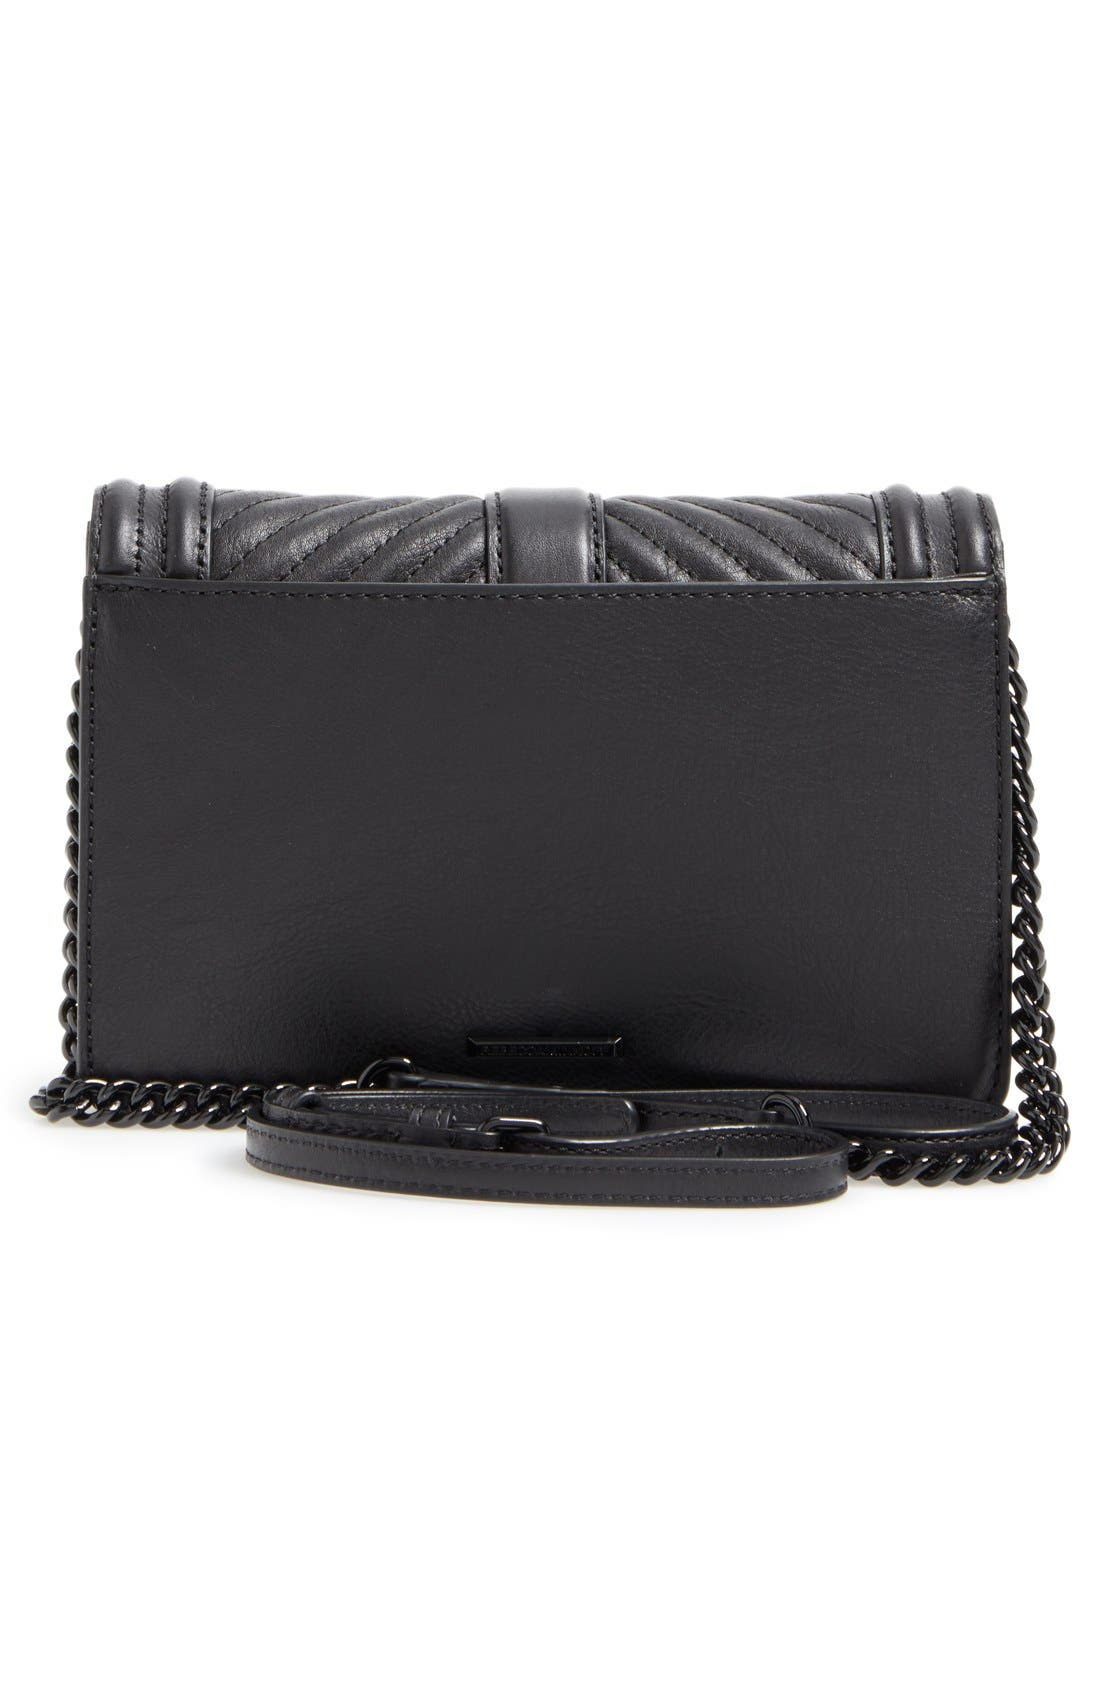 Small Love Leather Crossbody Bag,                             Alternate thumbnail 5, color,                             BLACK/ BLACK HRDWR